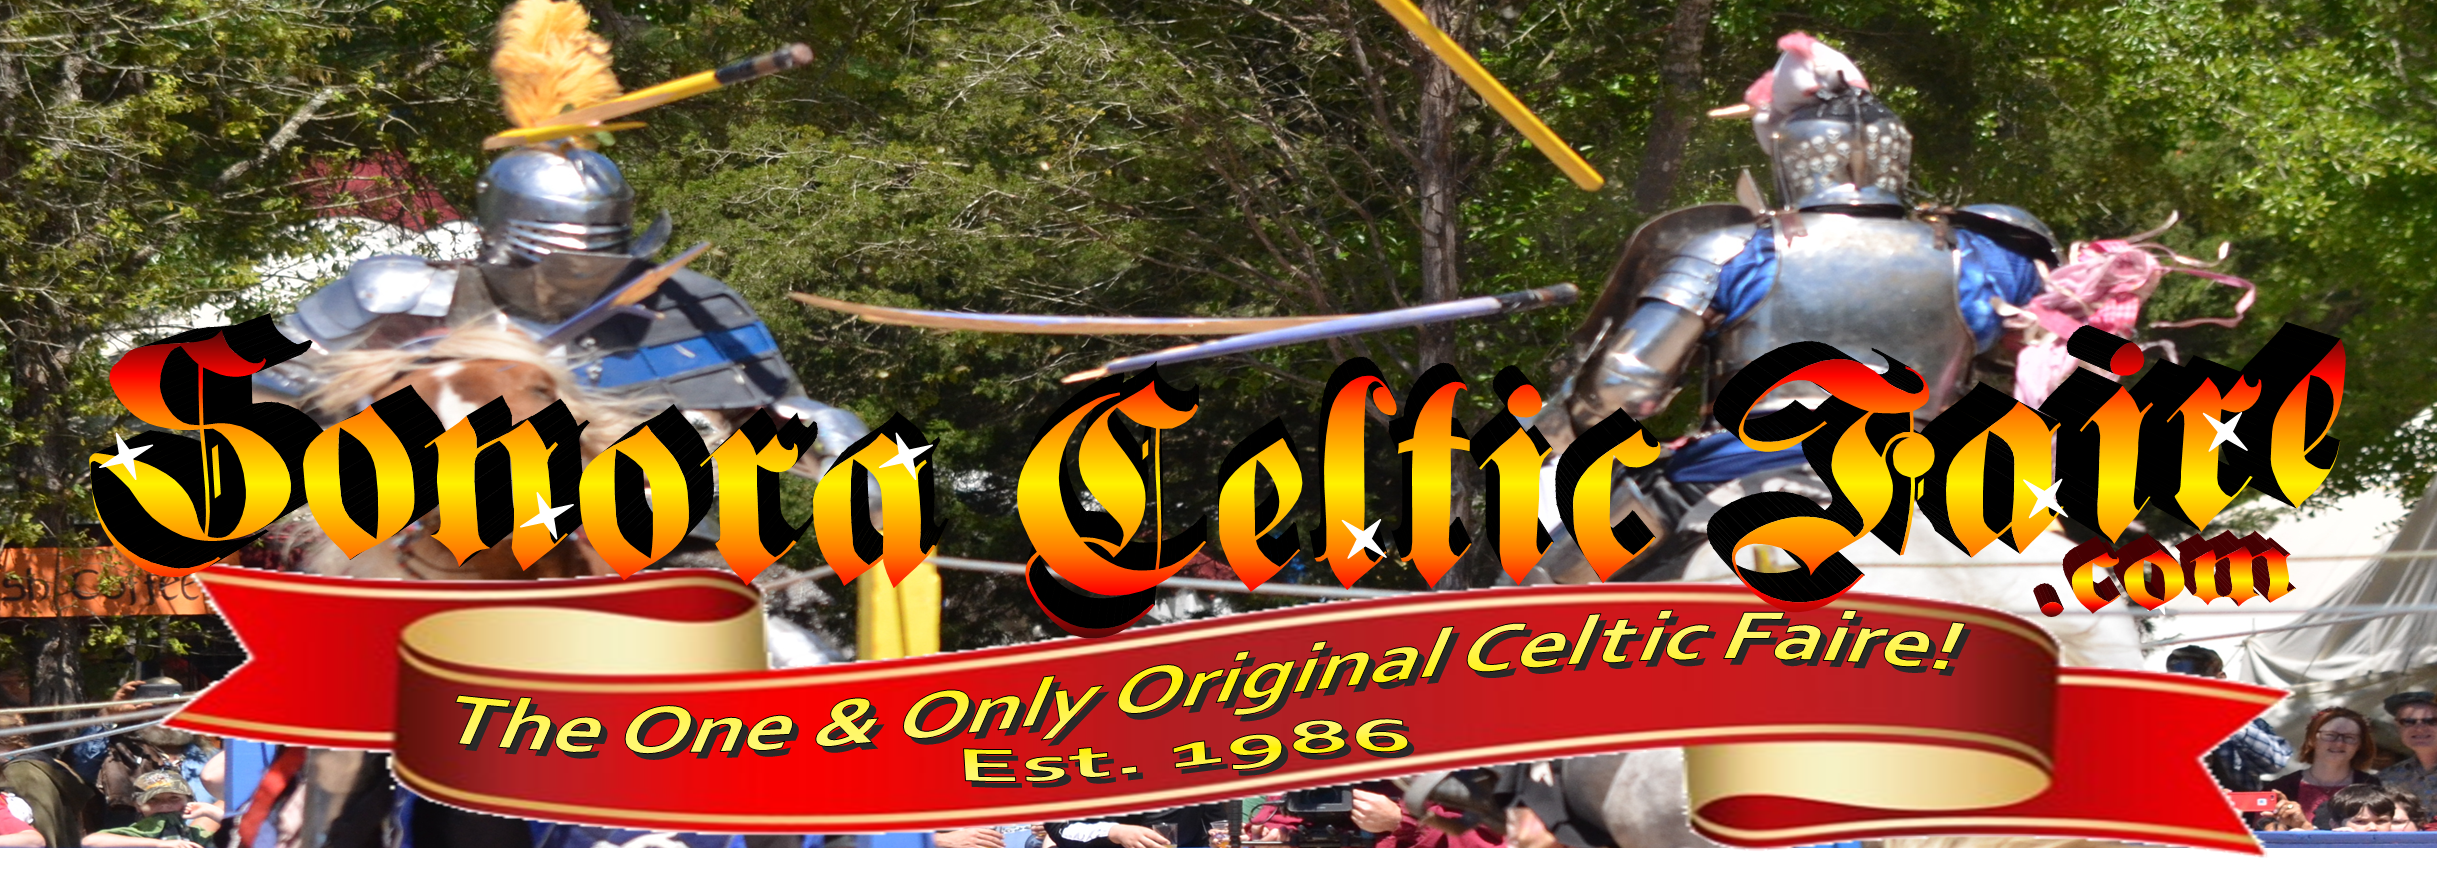 Sonora Celtic Faire